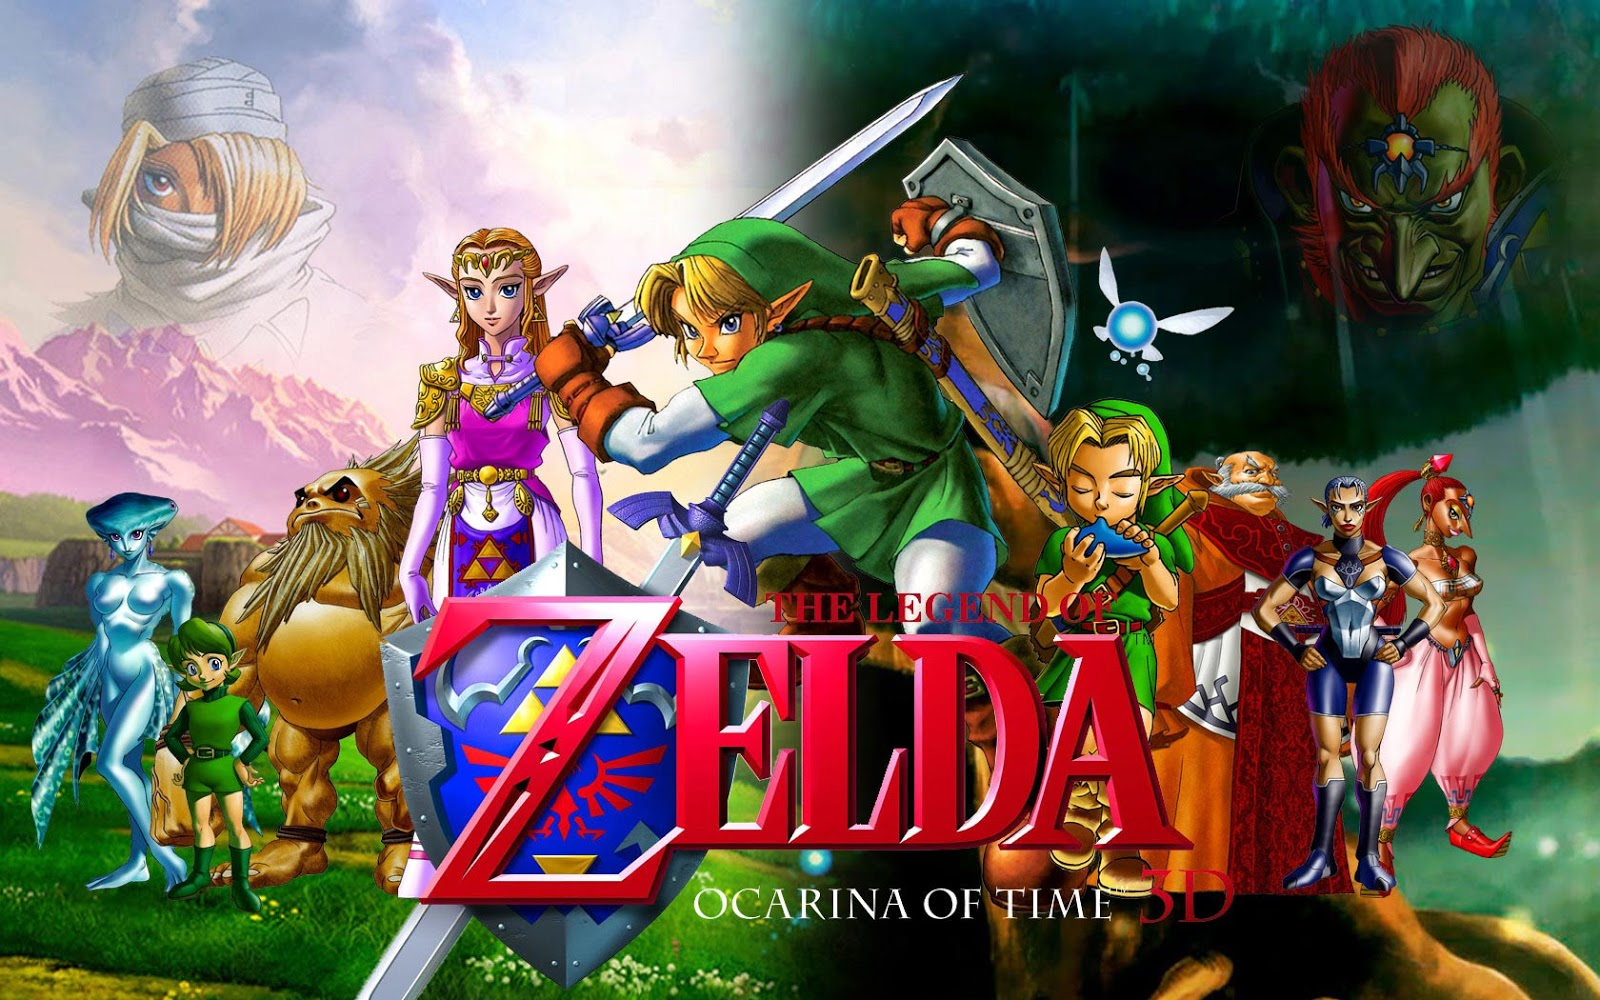 Download the legend of zelda: ocarina of time android games apk.